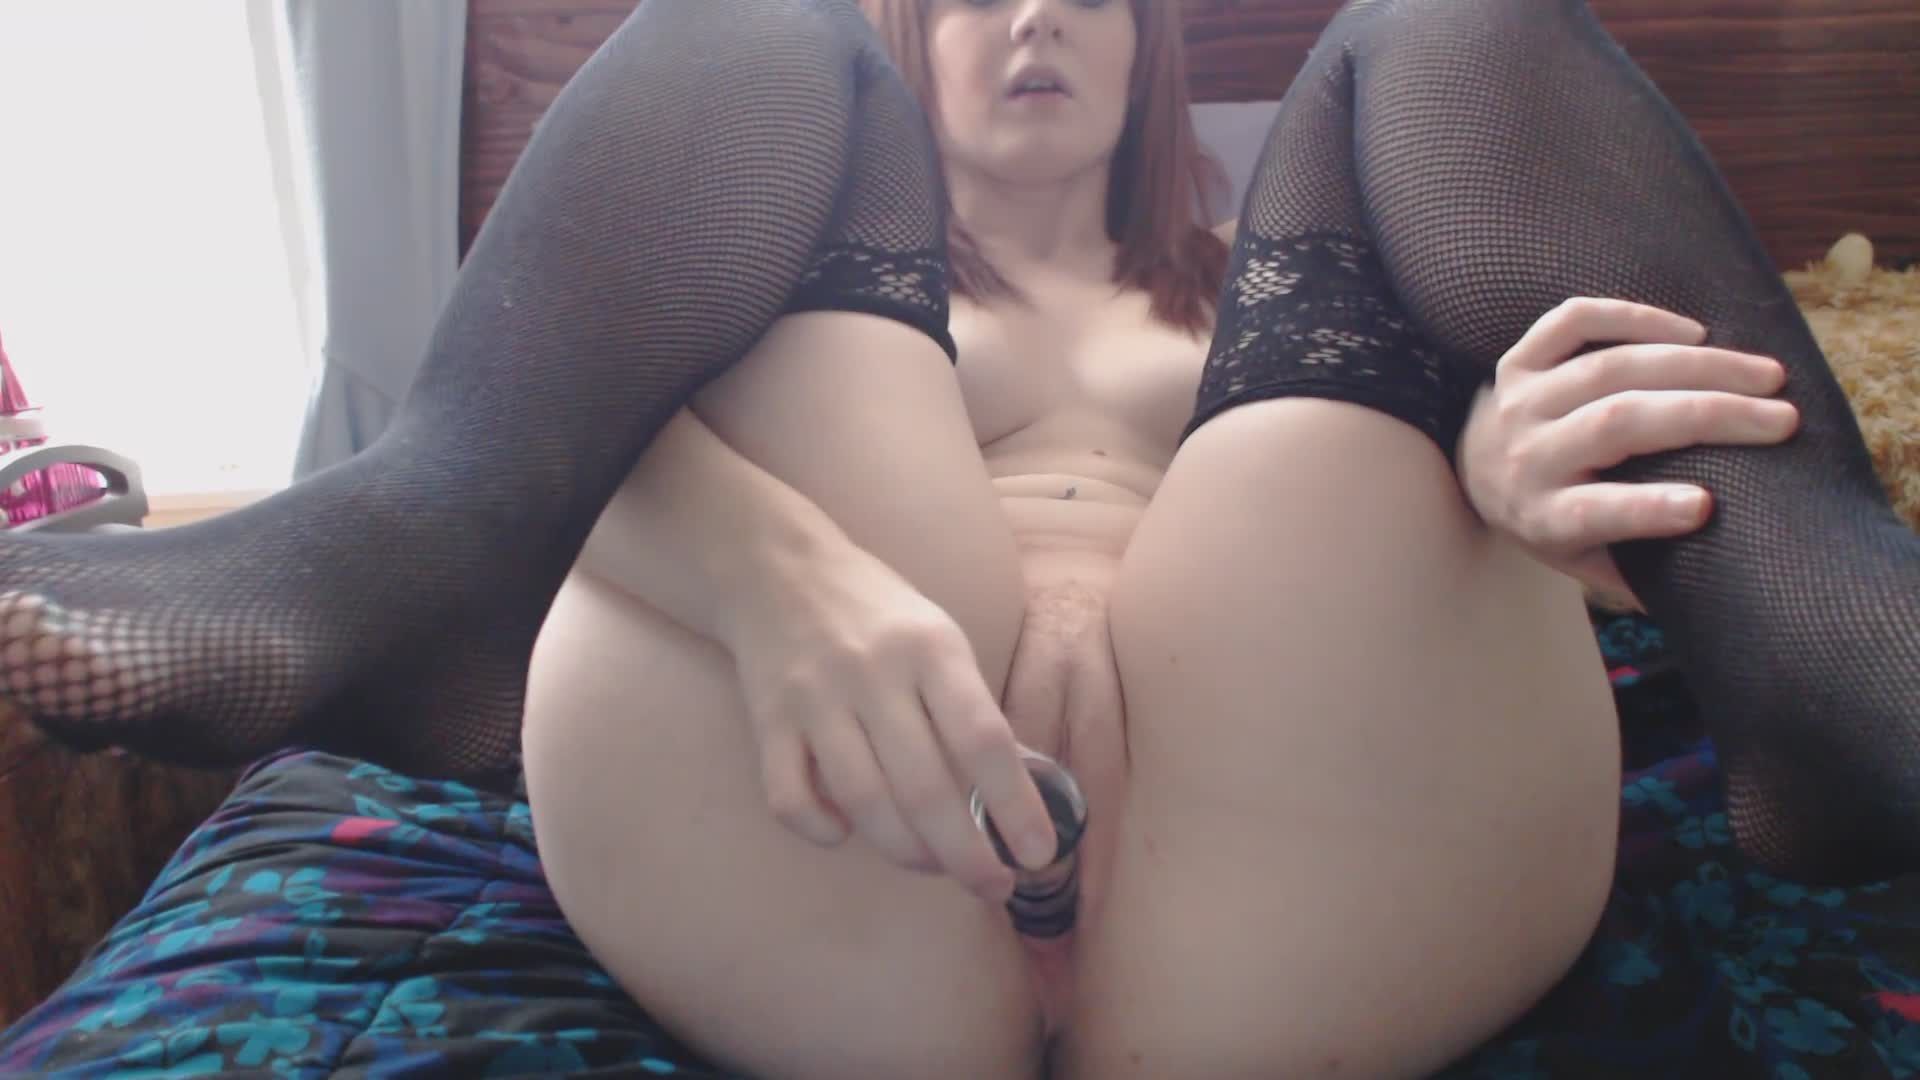 Wife loves mmf threesomes